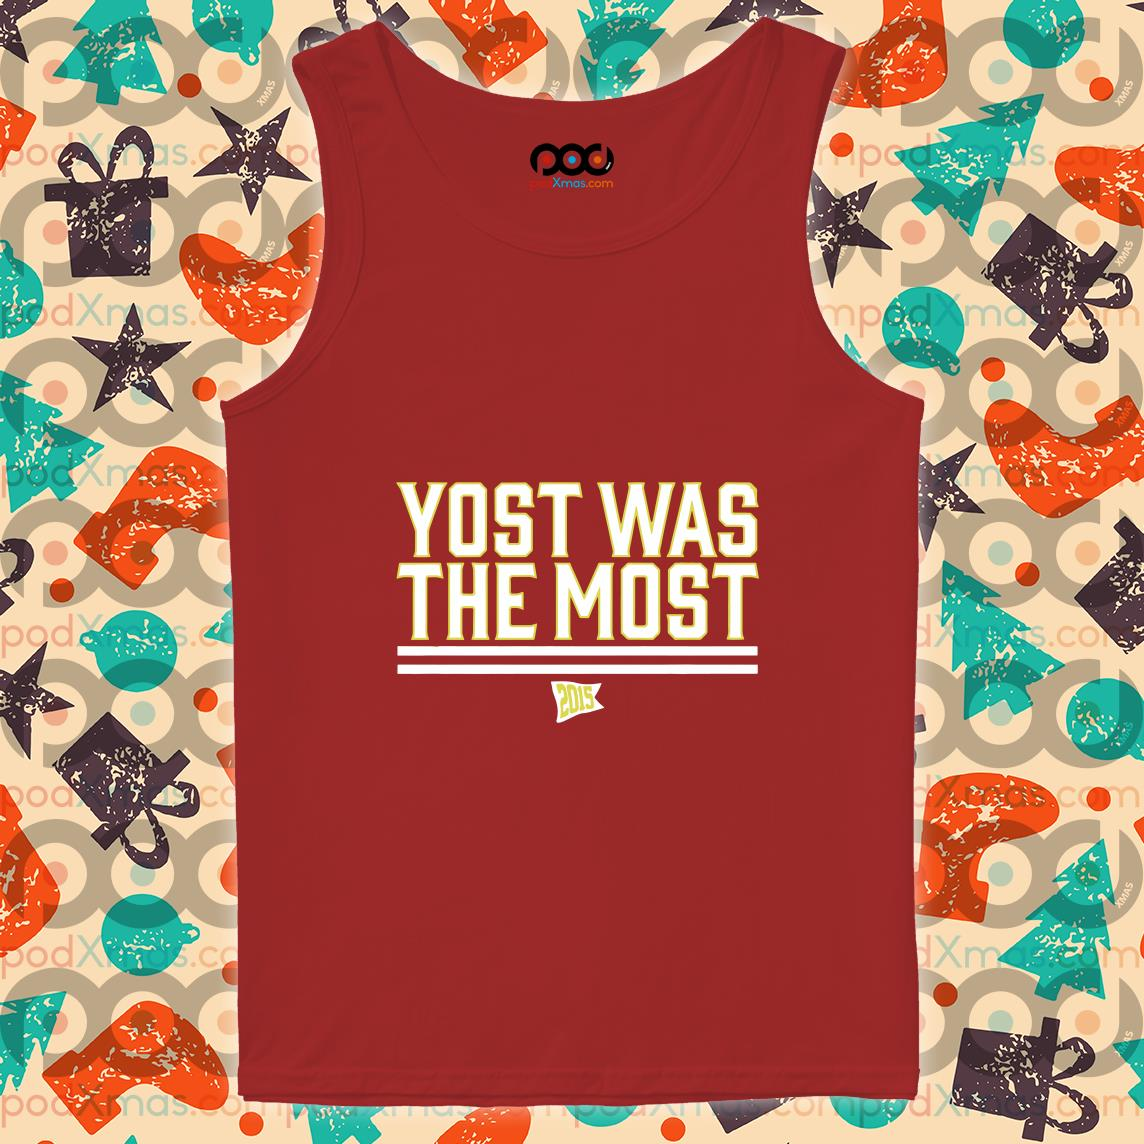 YOST WAS THE MOST Kansas City tank top